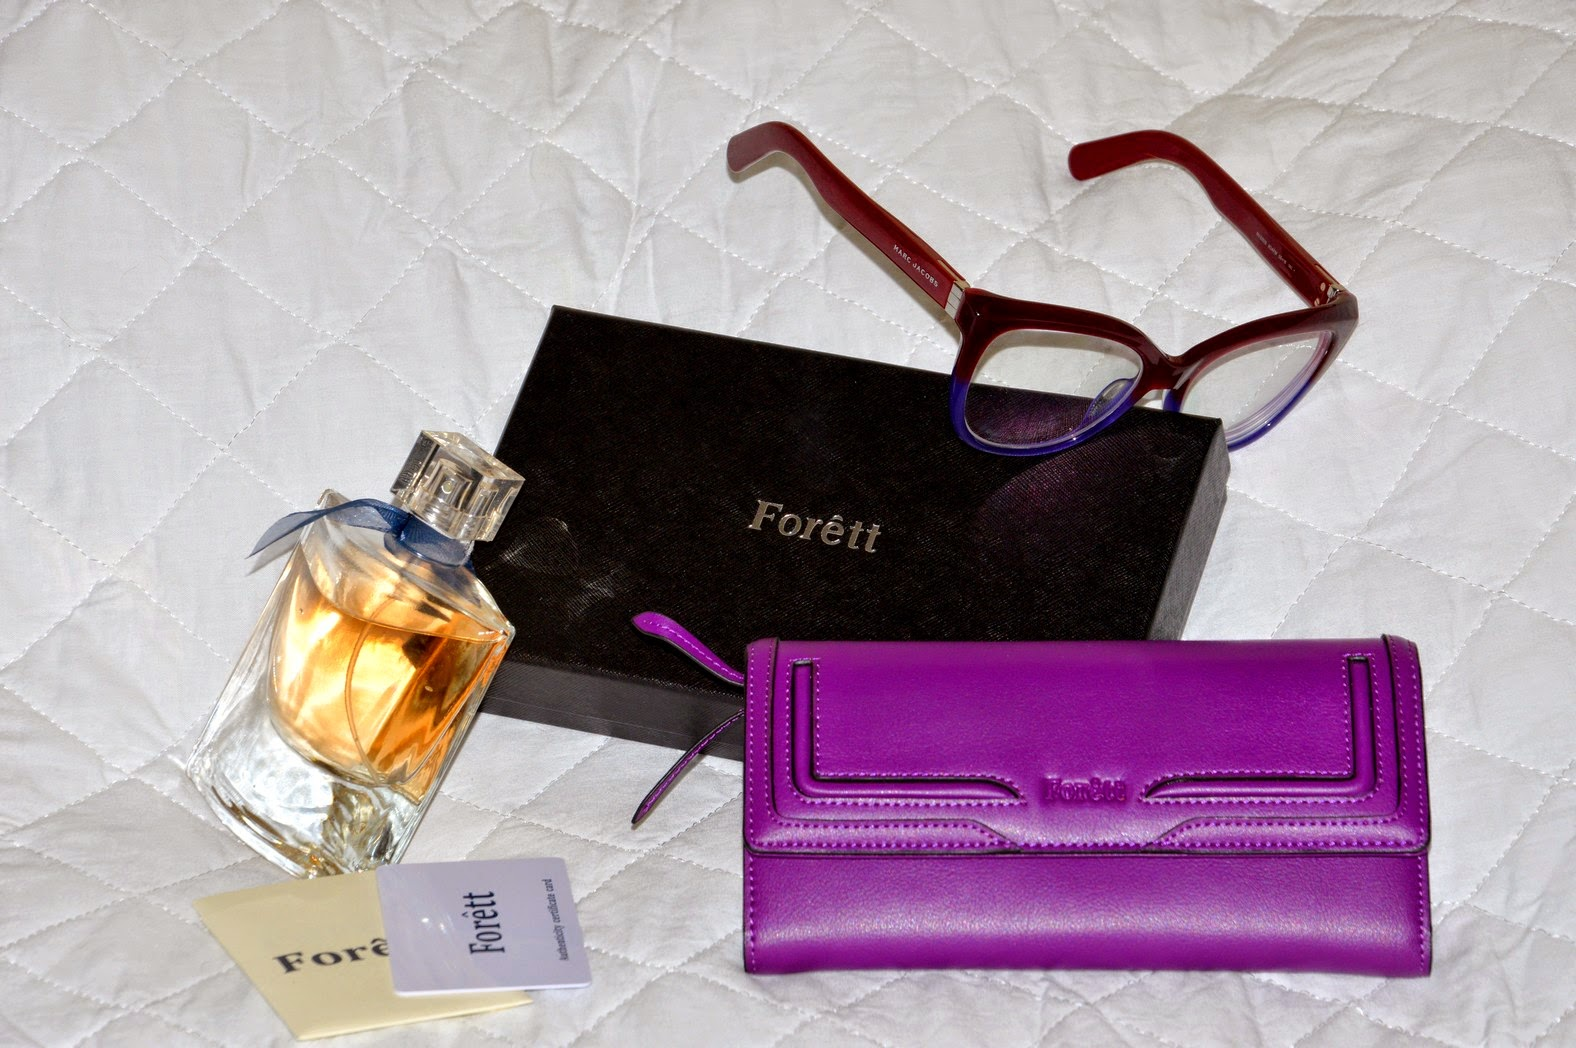 The Spring is here, my new violet wallet from FORETT, Primavera nei toni viola con il mio nuovo portafogli FORETT